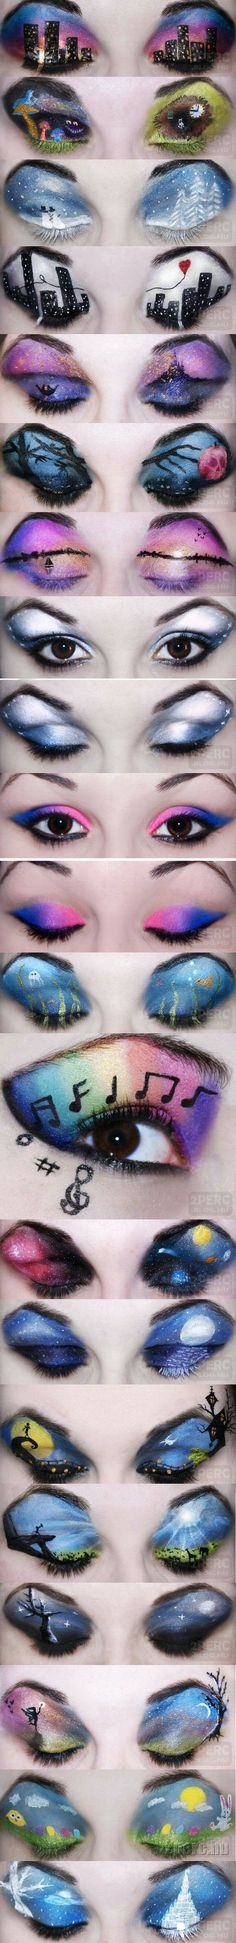 Awesome eye makeup!!